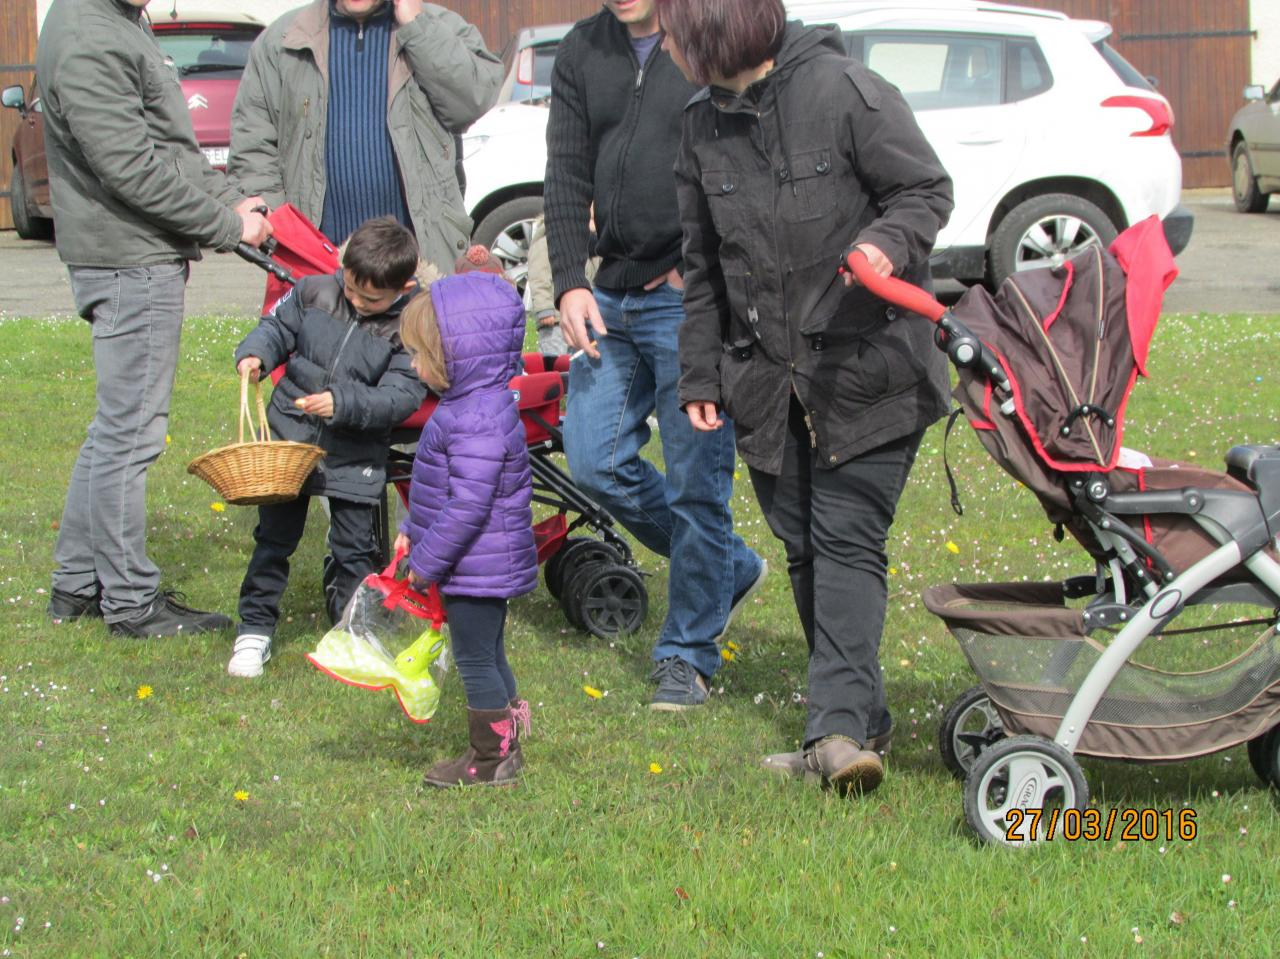 Chasse aux oeufs 27/03/2016